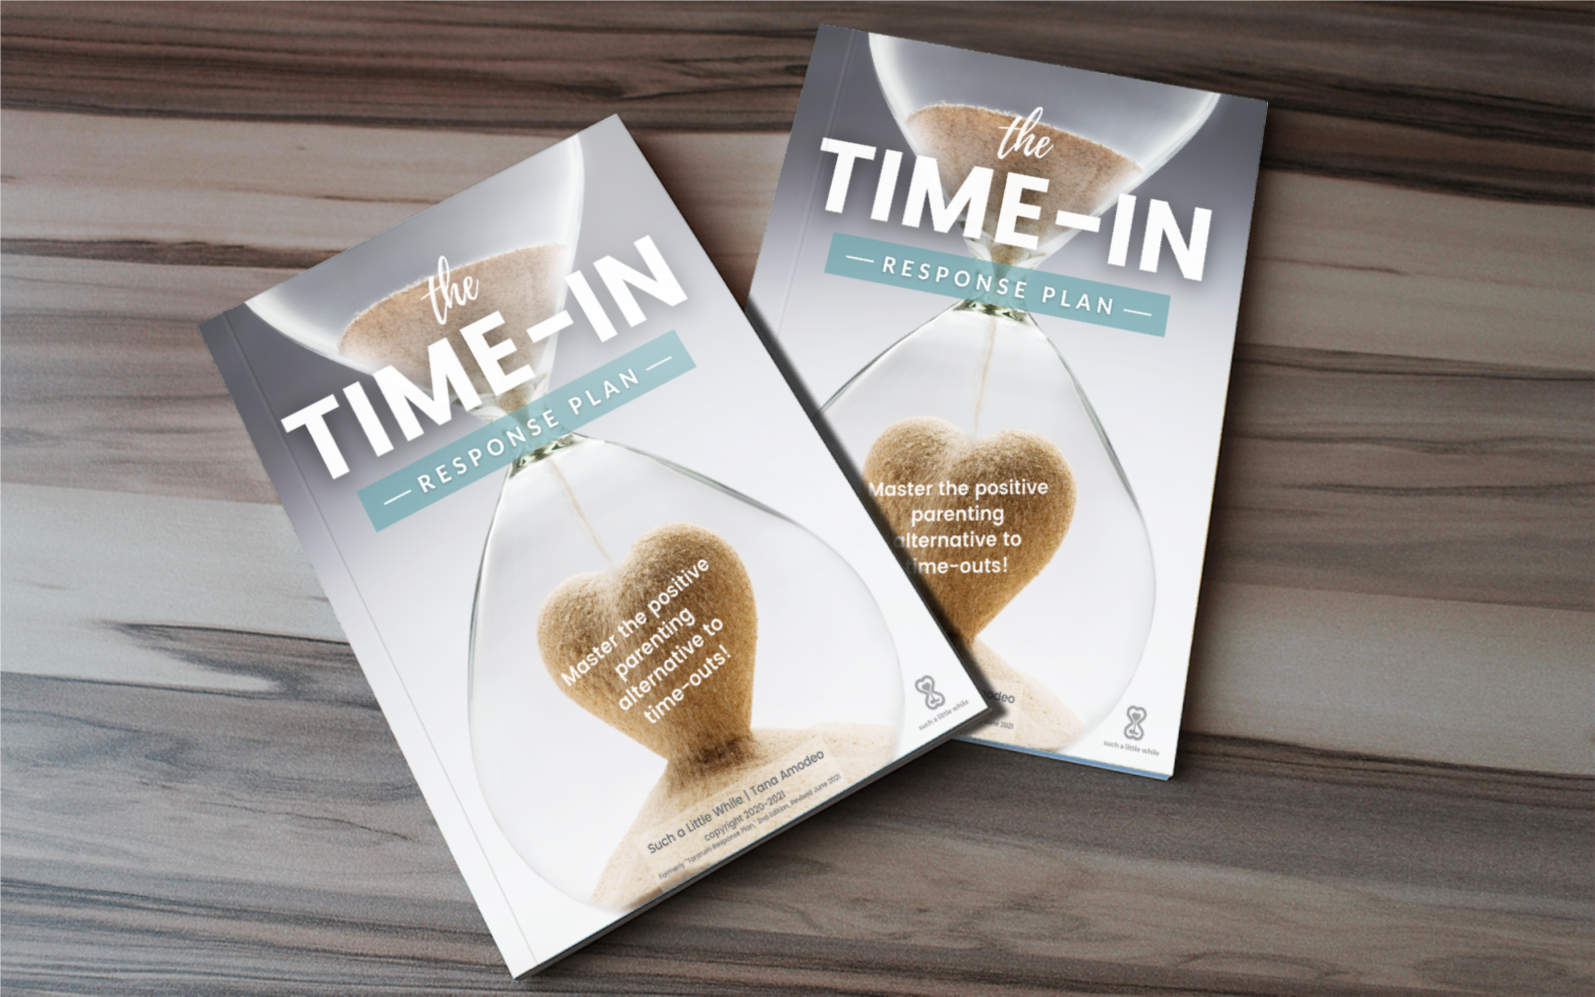 The Time-In Response Plan (Time Out Alternative) by Such a Little While